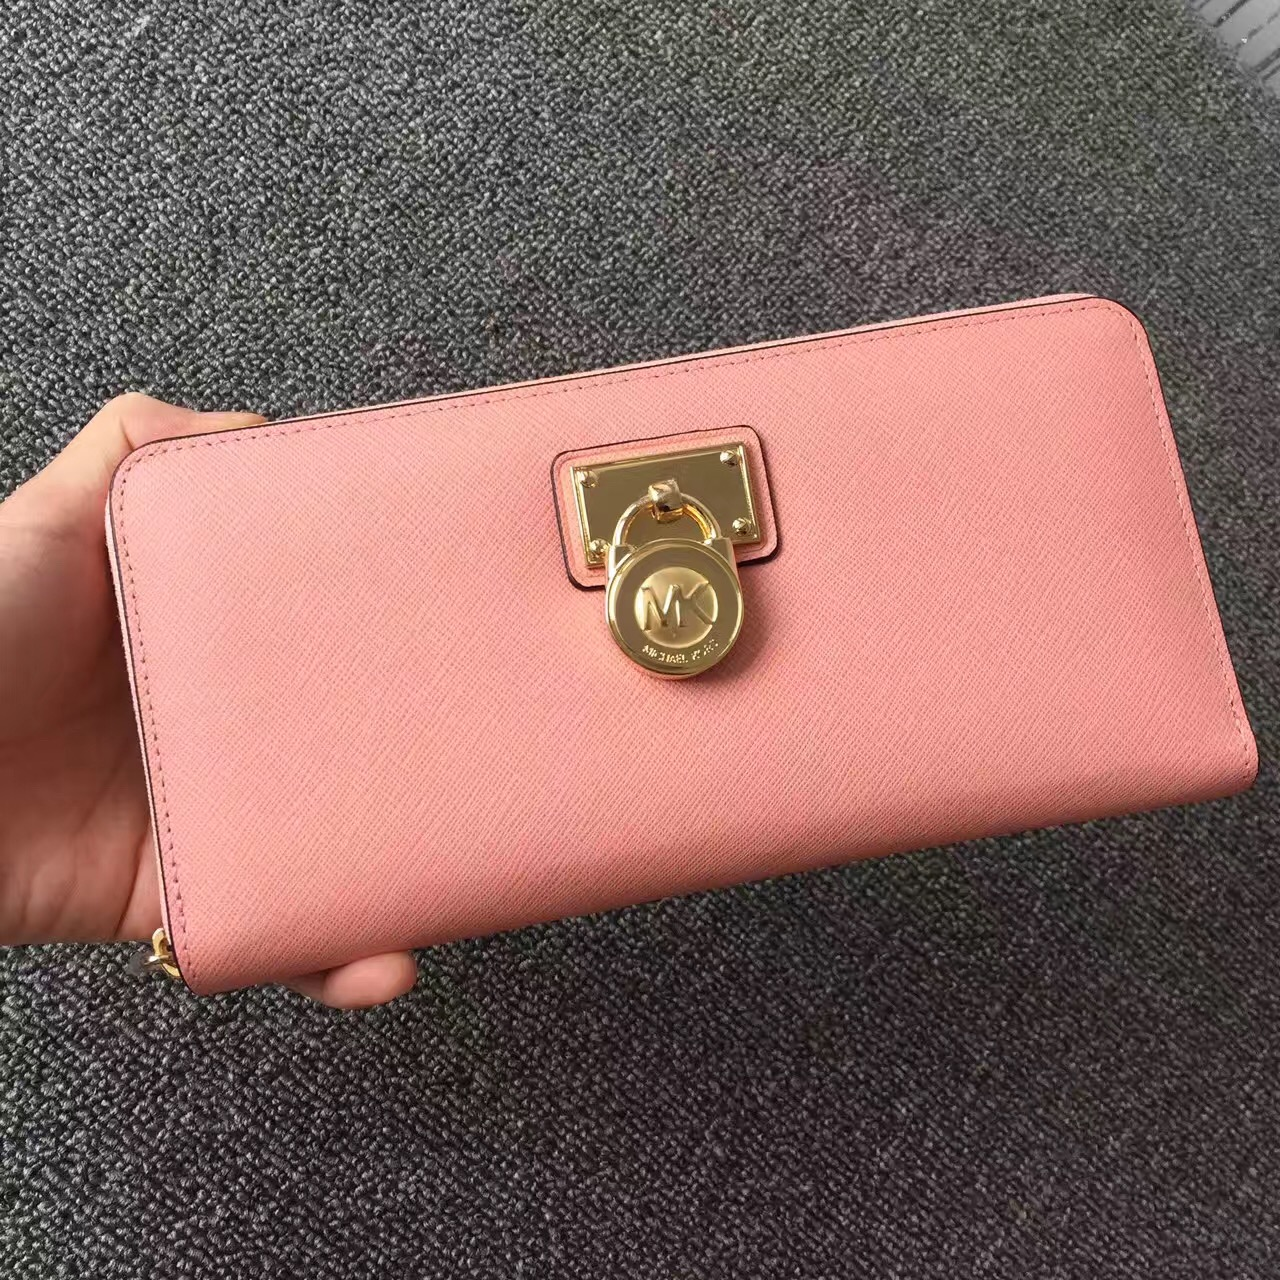 2017 New Michael Kors Lock Women Small Wallets Peach